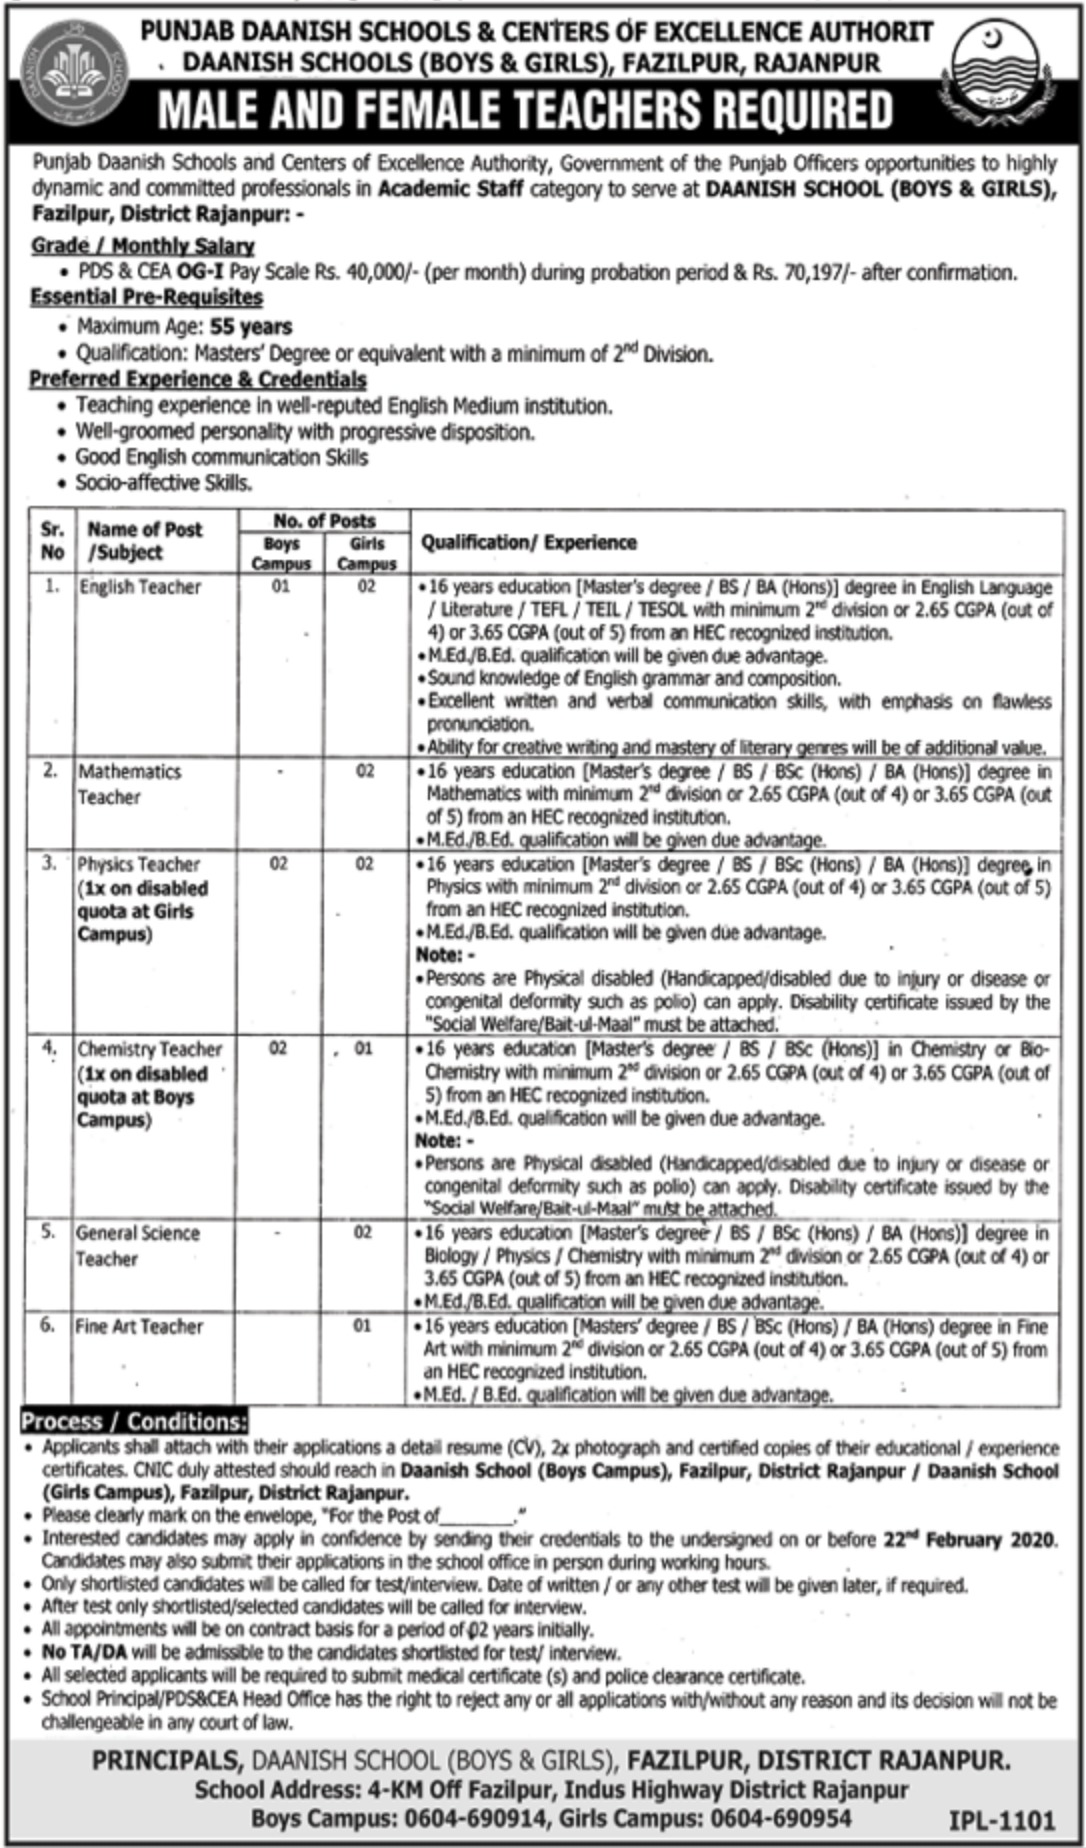 Punjab Daanish Schools & Centers of Excellence Authority Jobs 2020